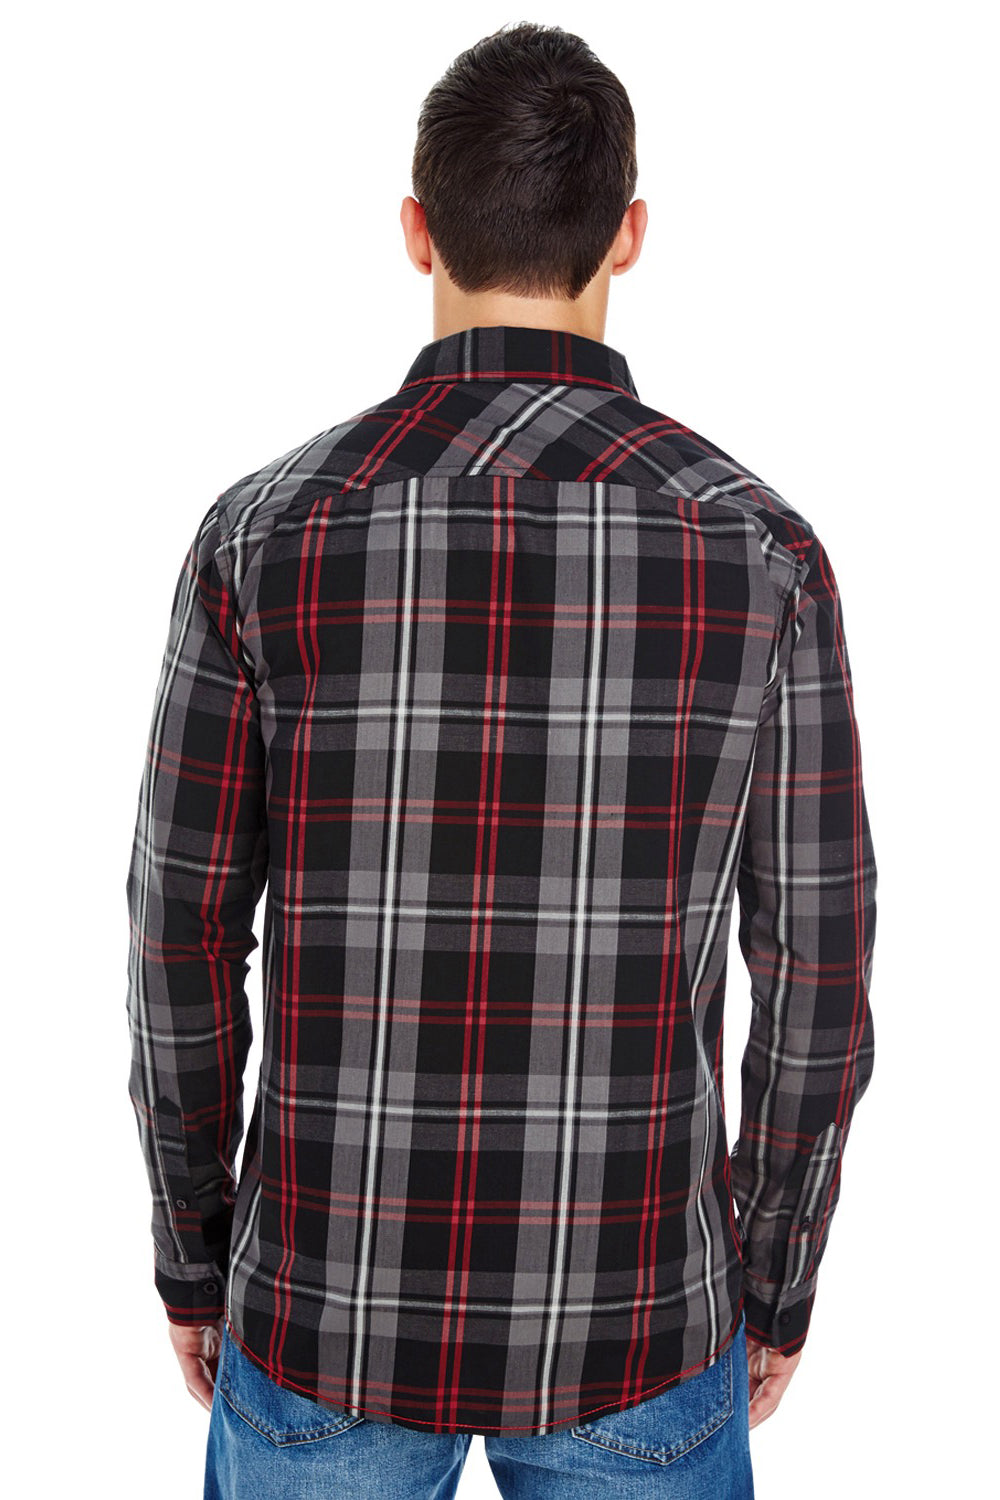 Burnside B8202 Mens Plaid Long Sleeve Button Down Shirt w/ Double Pockets Red/Black Back